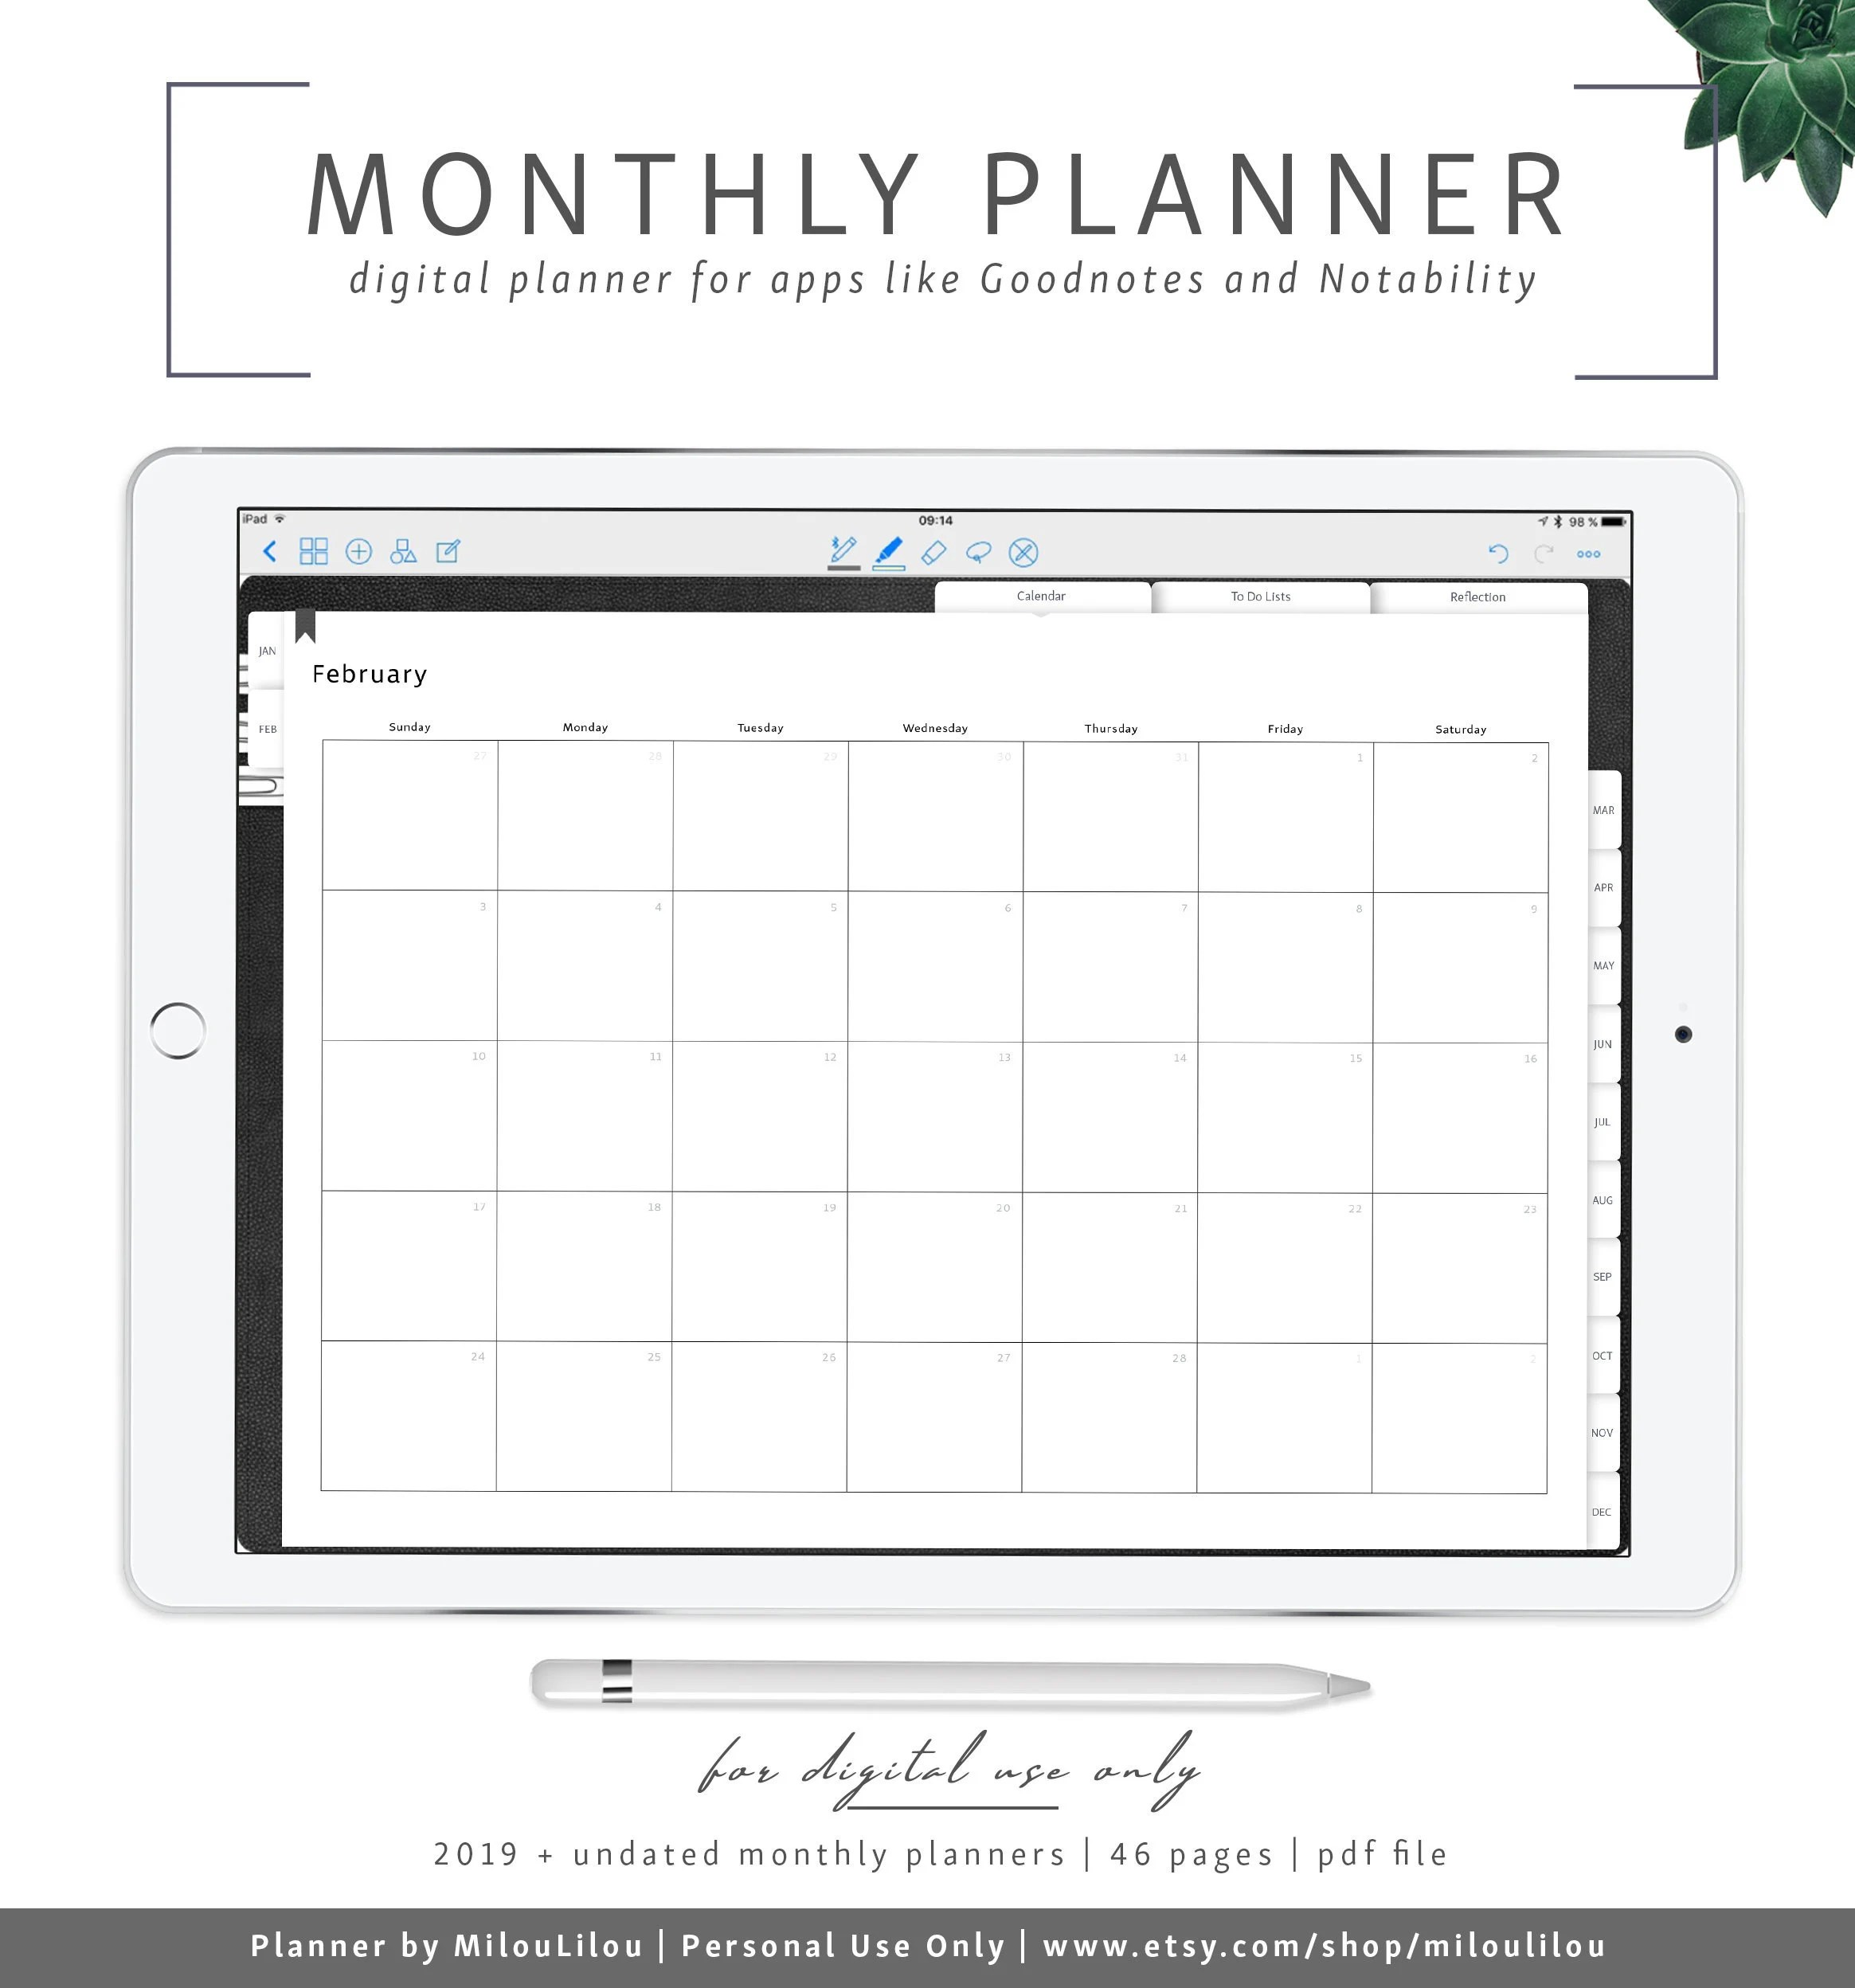 Month Planner 2019 / Goodnotes  Notability Digital Planner / Etsy